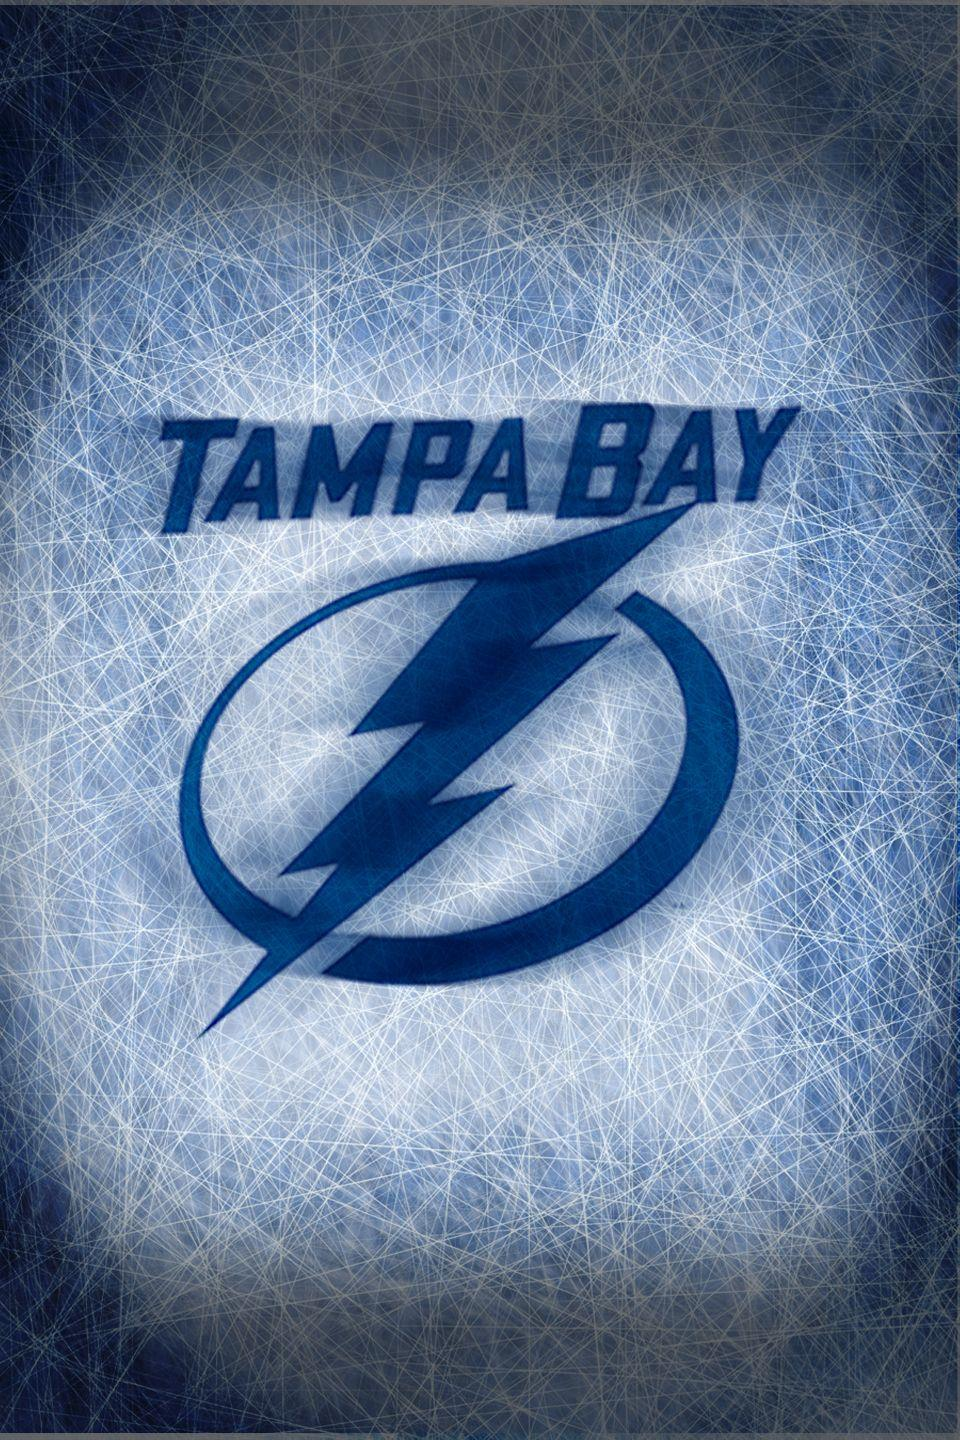 In Gallery: Tampa Bay Lightning IPhone Wallpaper, 44 Tampa Bay